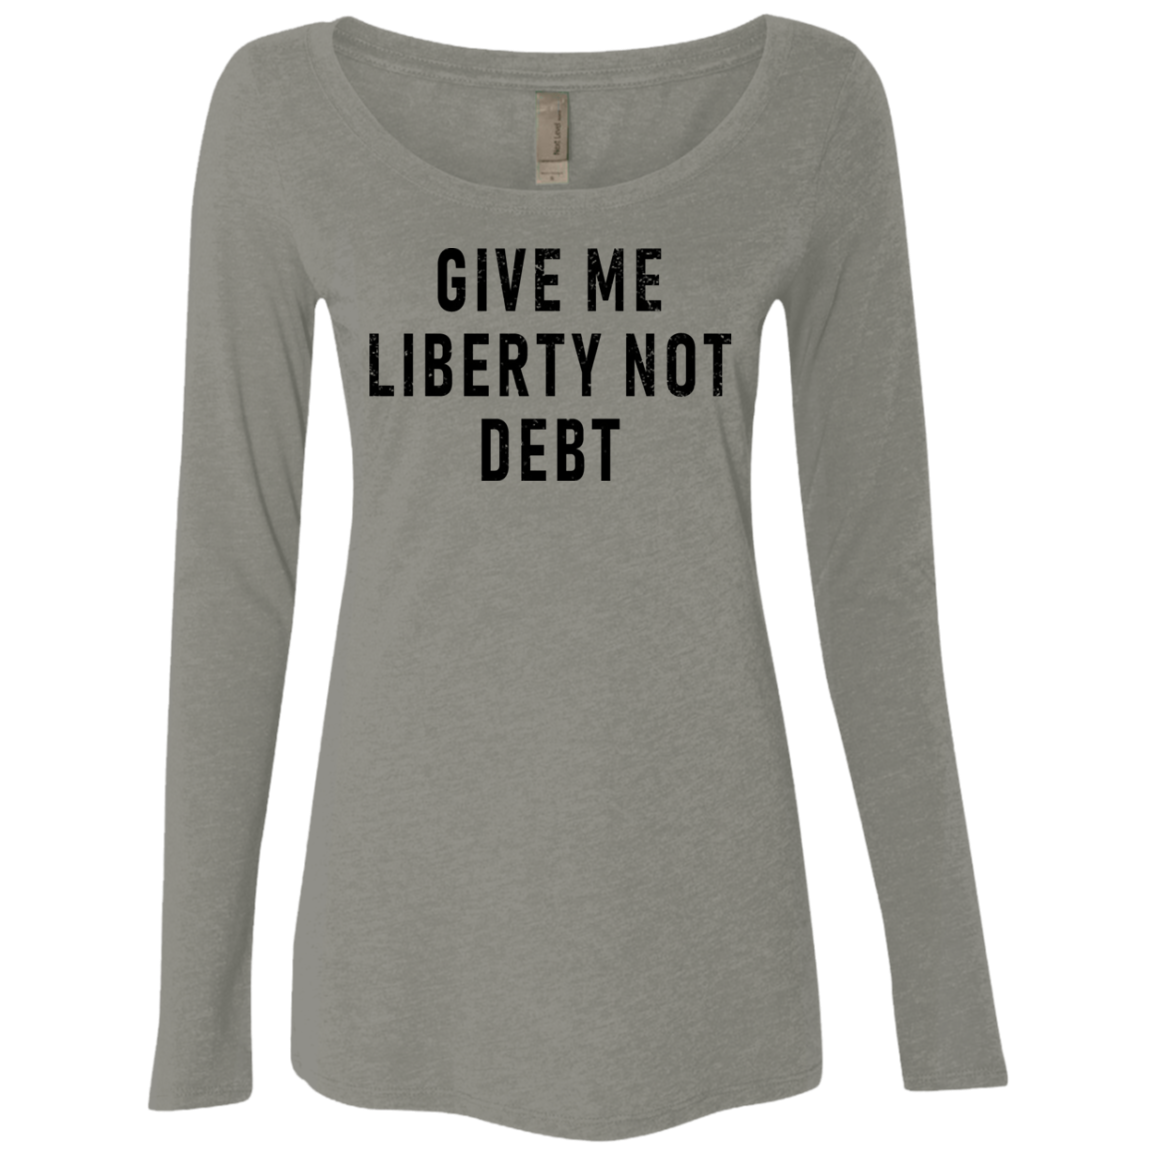 Give Me Liberty Not Debt Women's Long Sleeve Tee